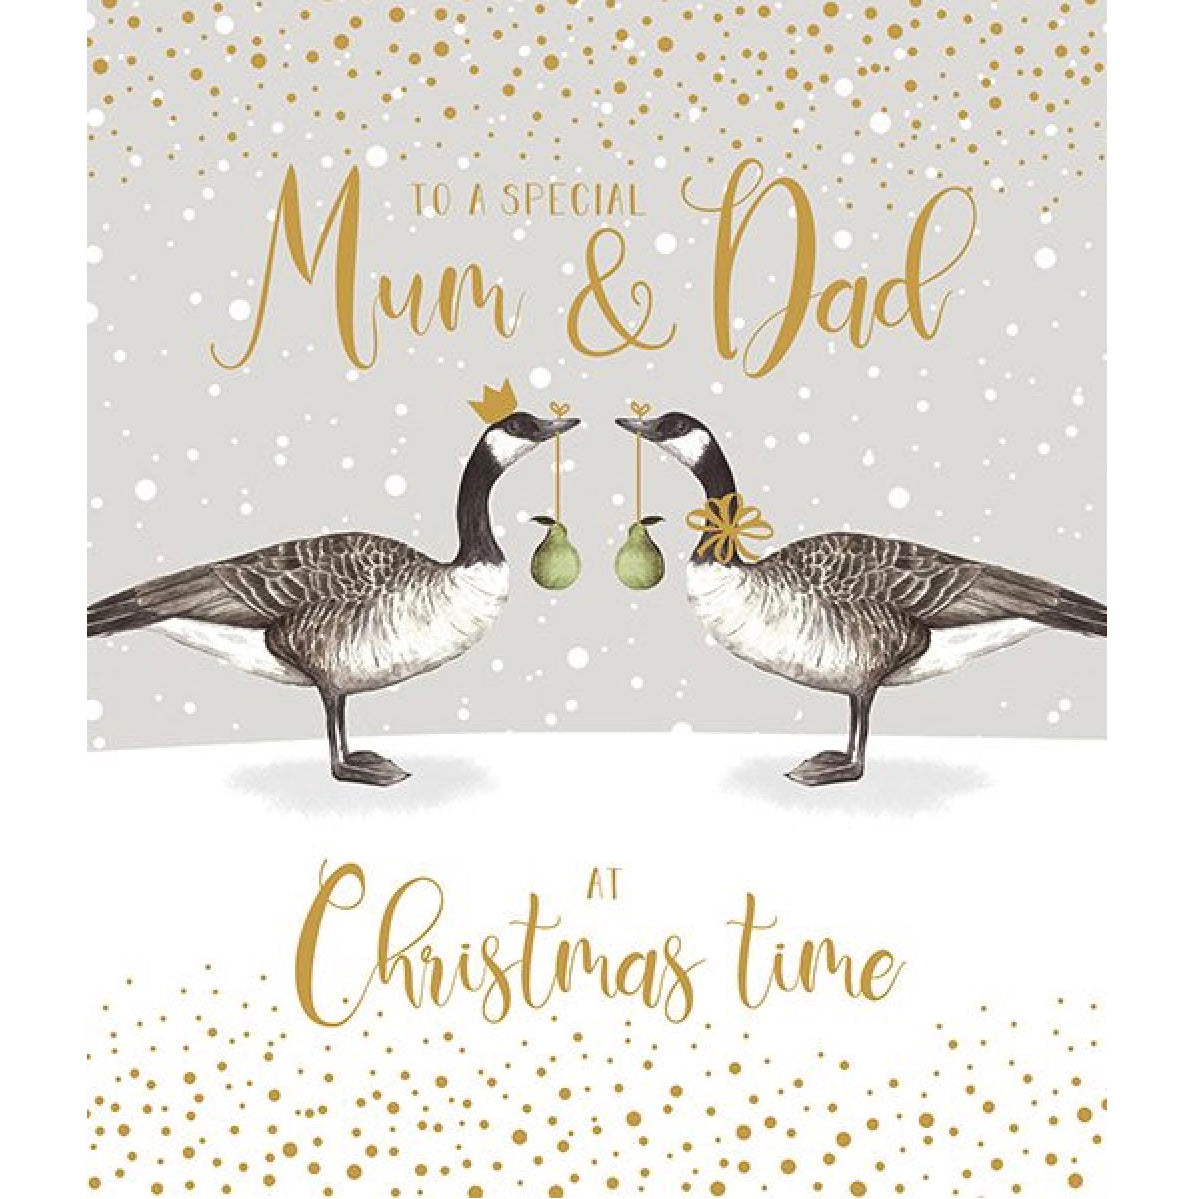 """To a special Mum & Dad at Christmas time"" Geese Greeting Card"